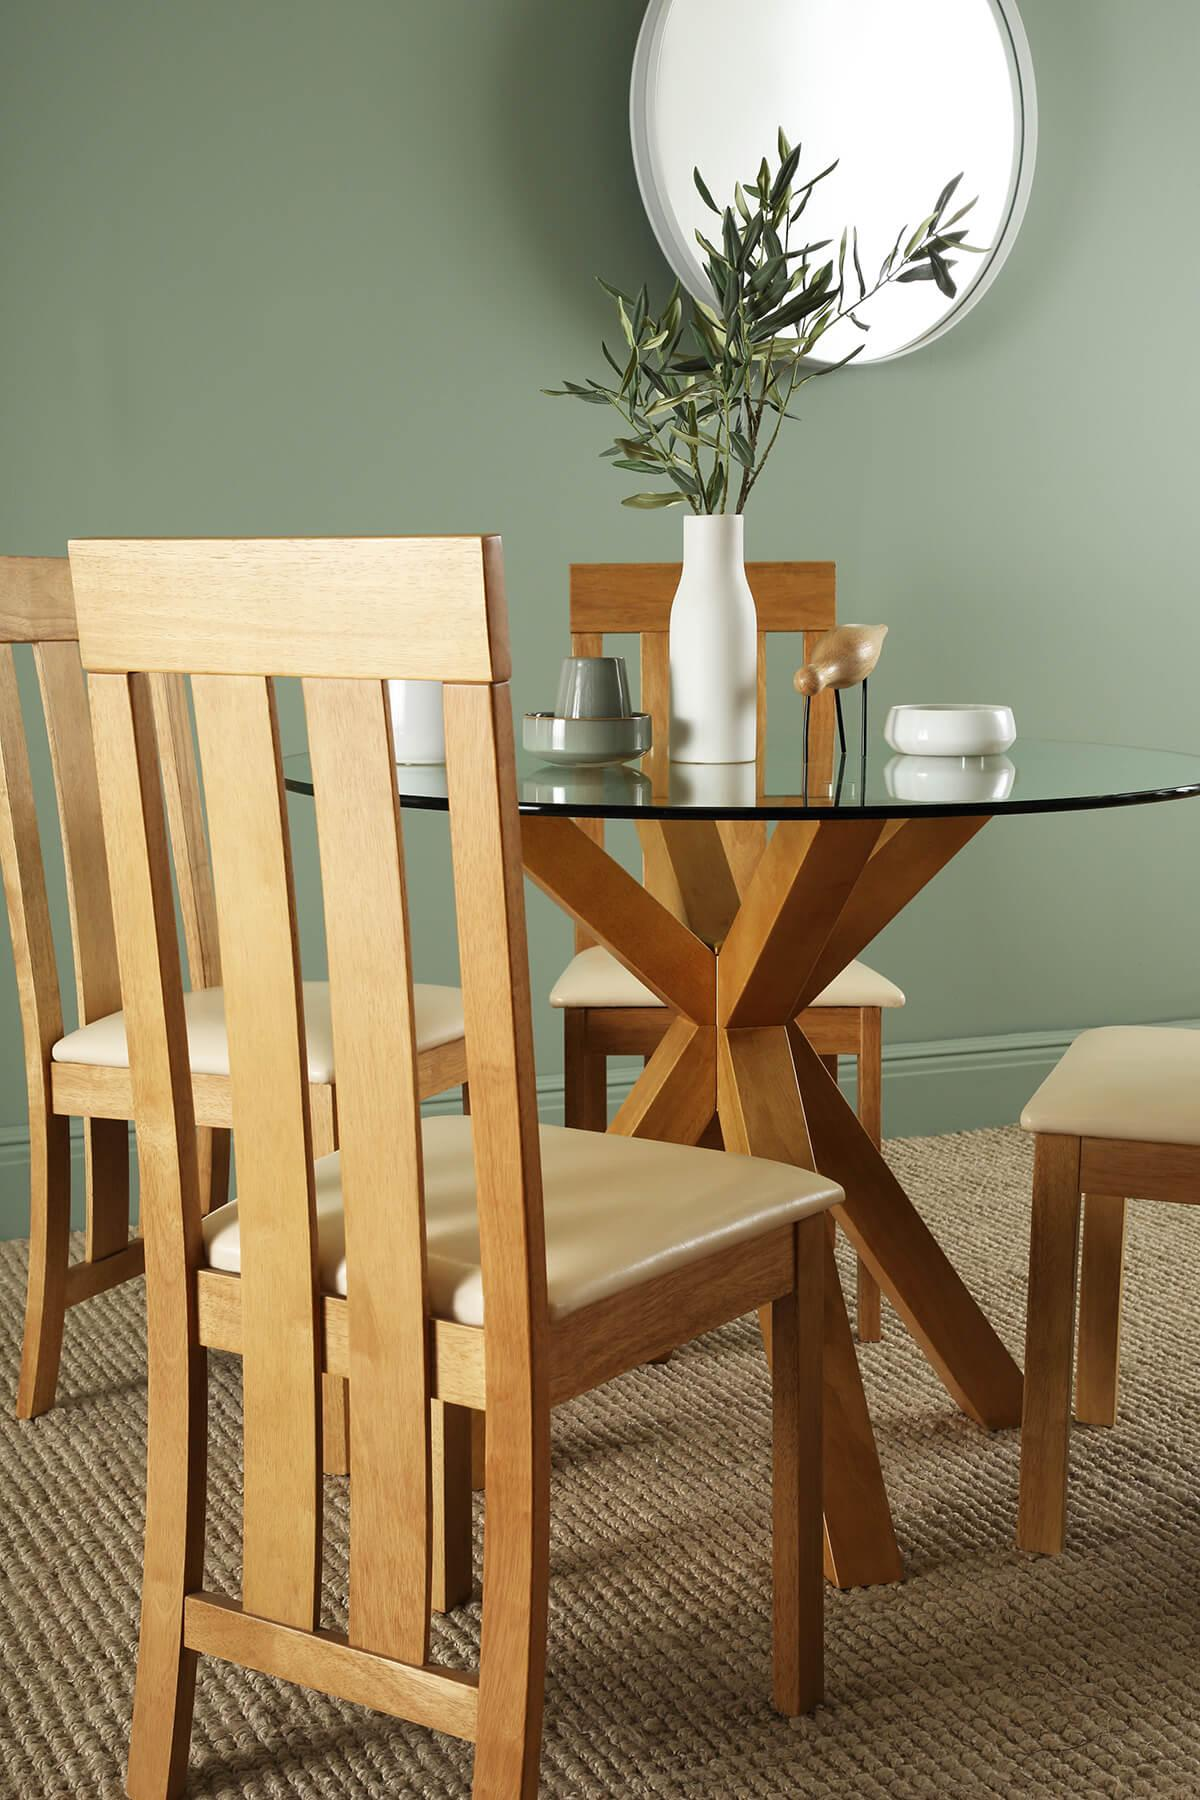 Hatton oak and glass Chester oak chairs close up